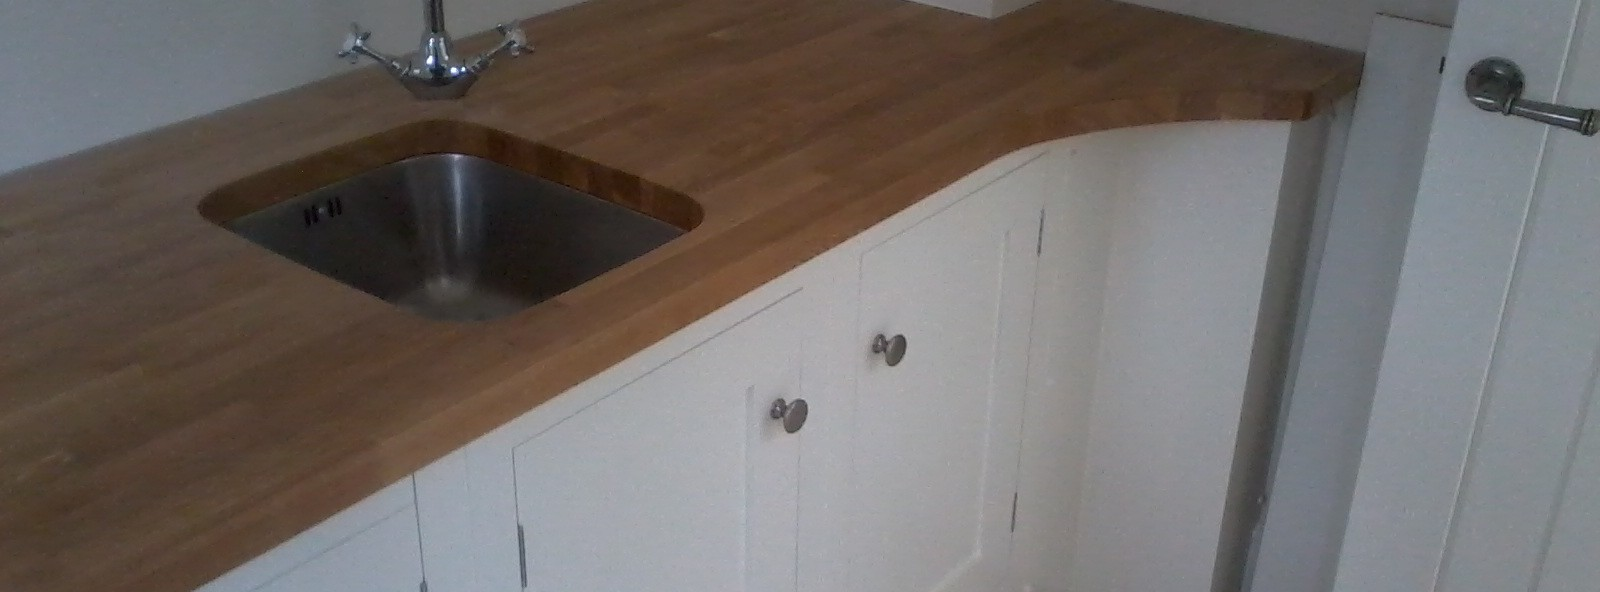 Bespoke kitchen sink installation.